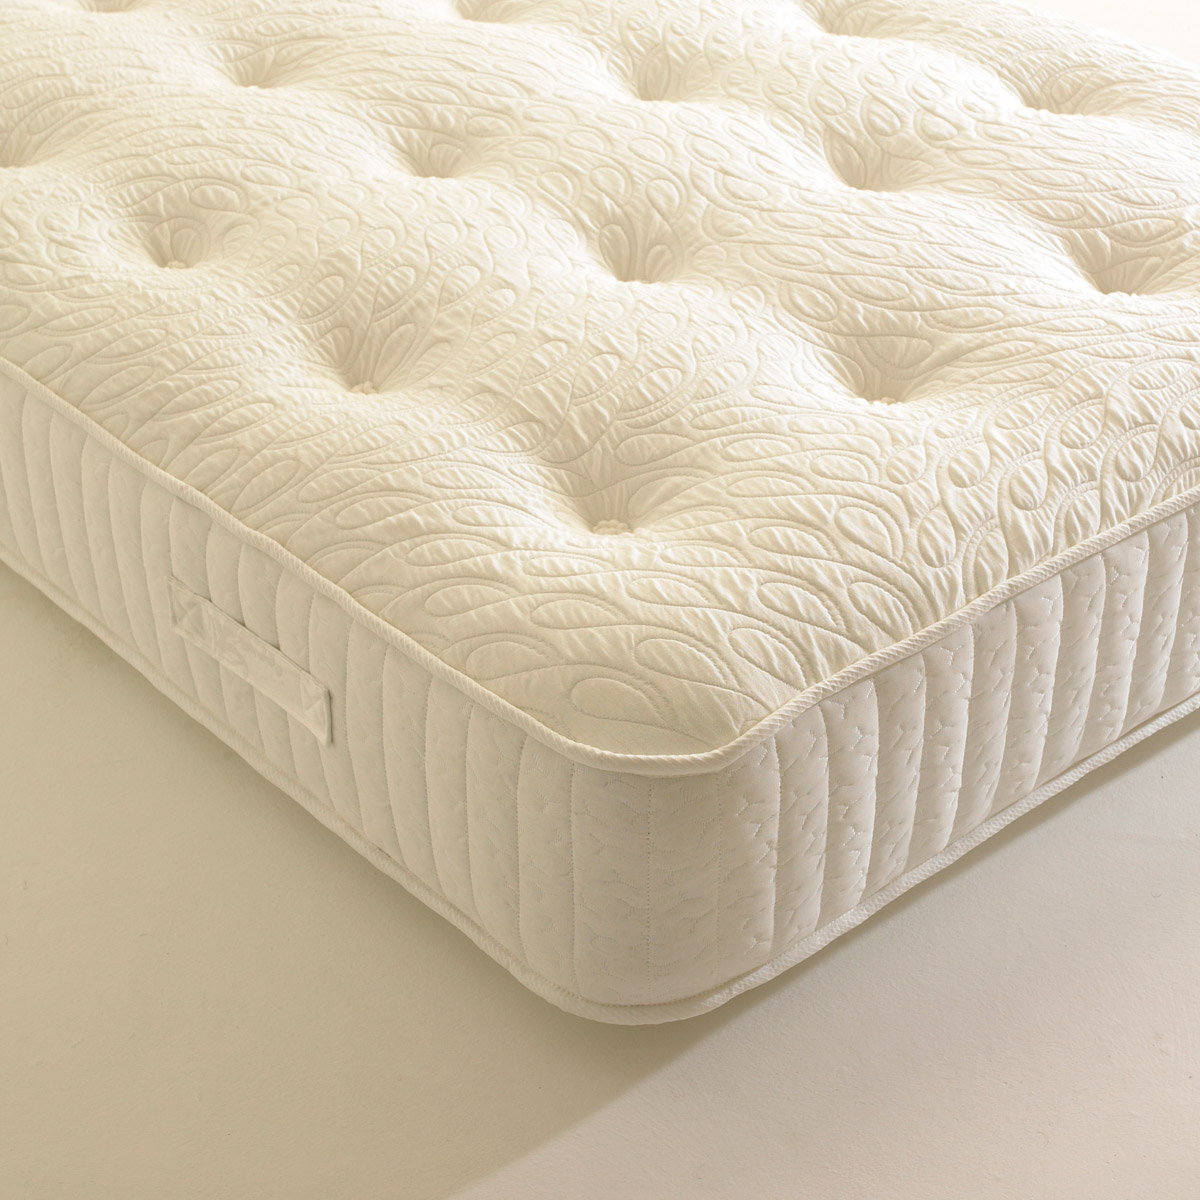 Shire Beds Eco Drift Anti Bug Mattress from £199